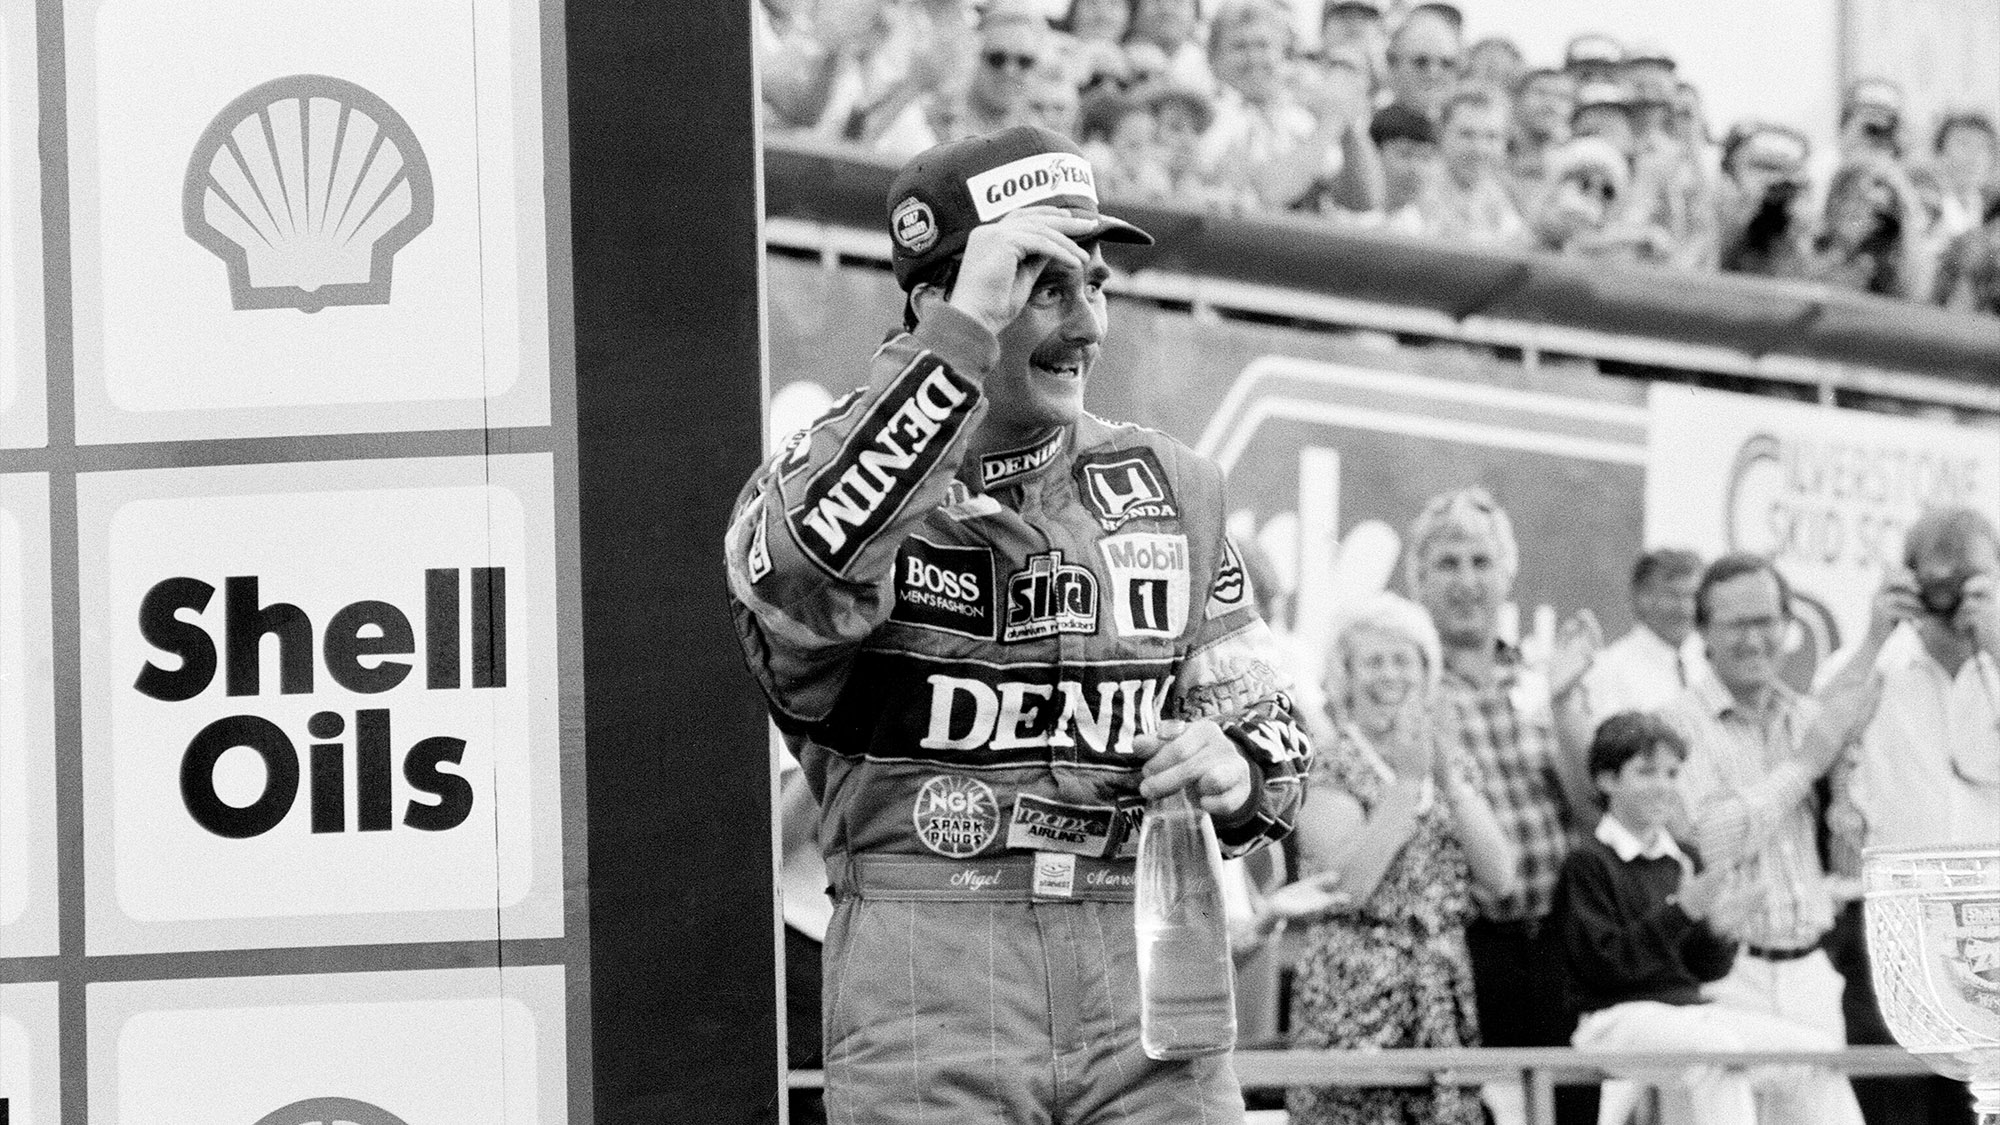 Nigel Mansell celebrates on the podium at the 1987 British Grand Prix at Silverstone